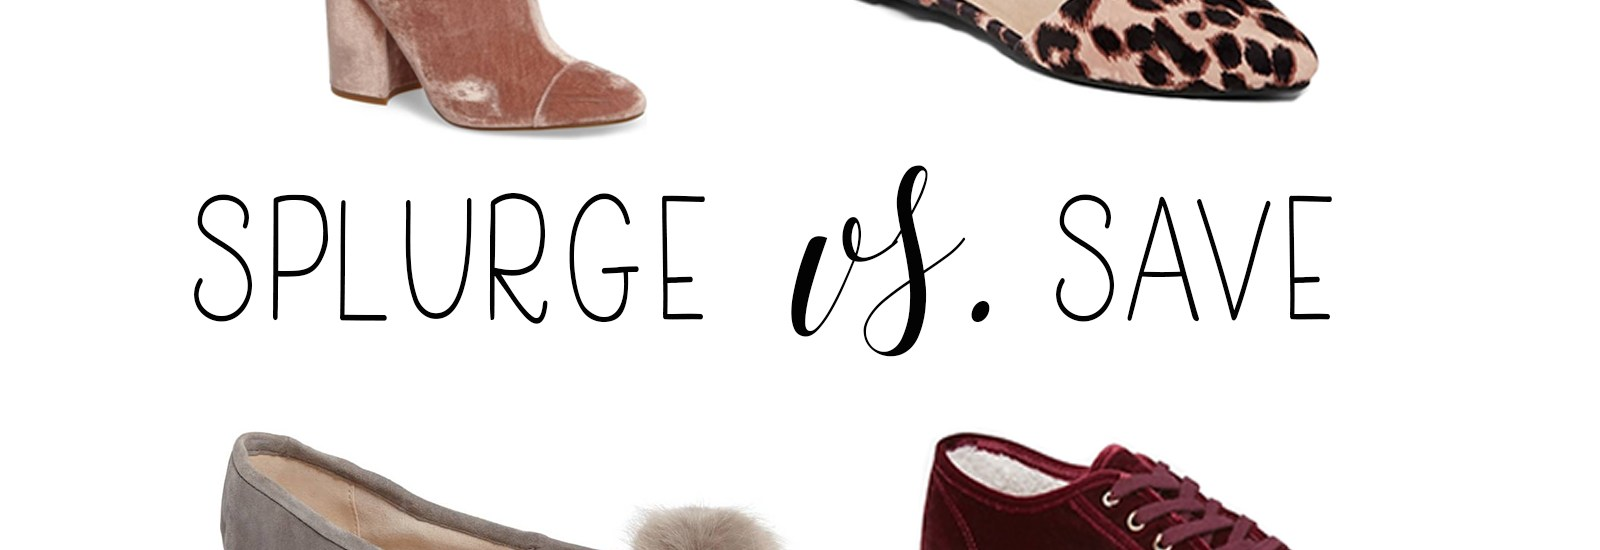 Splurge vs. Save on Shoes with Old Navy